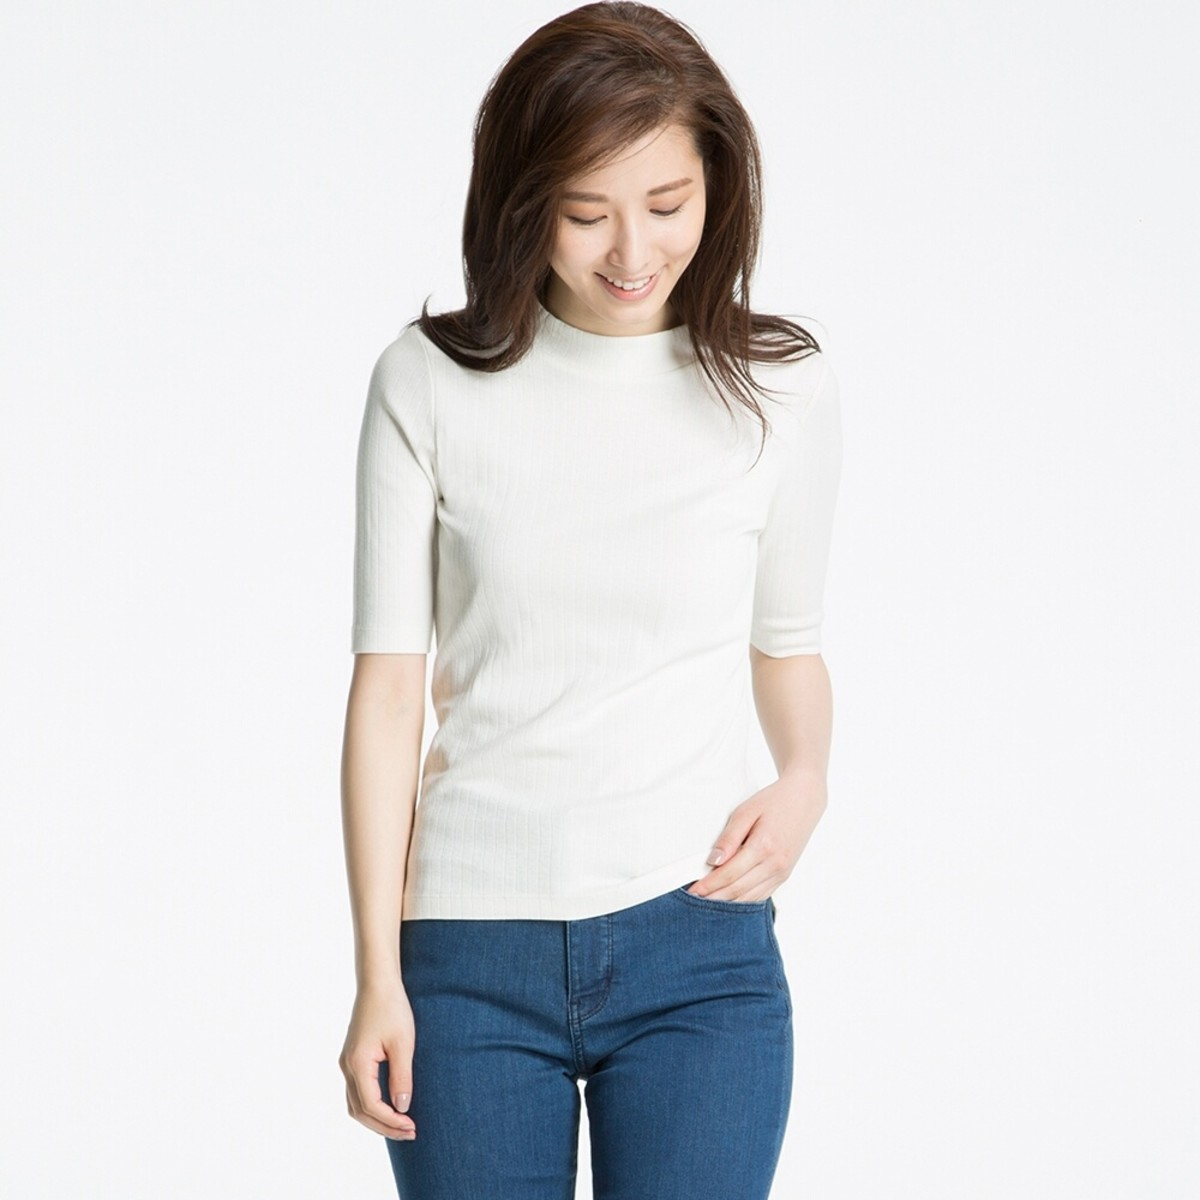 Uniqlo ribbed high-neck half-sleeve T-shirt, $14.90, available at Uniqlo.